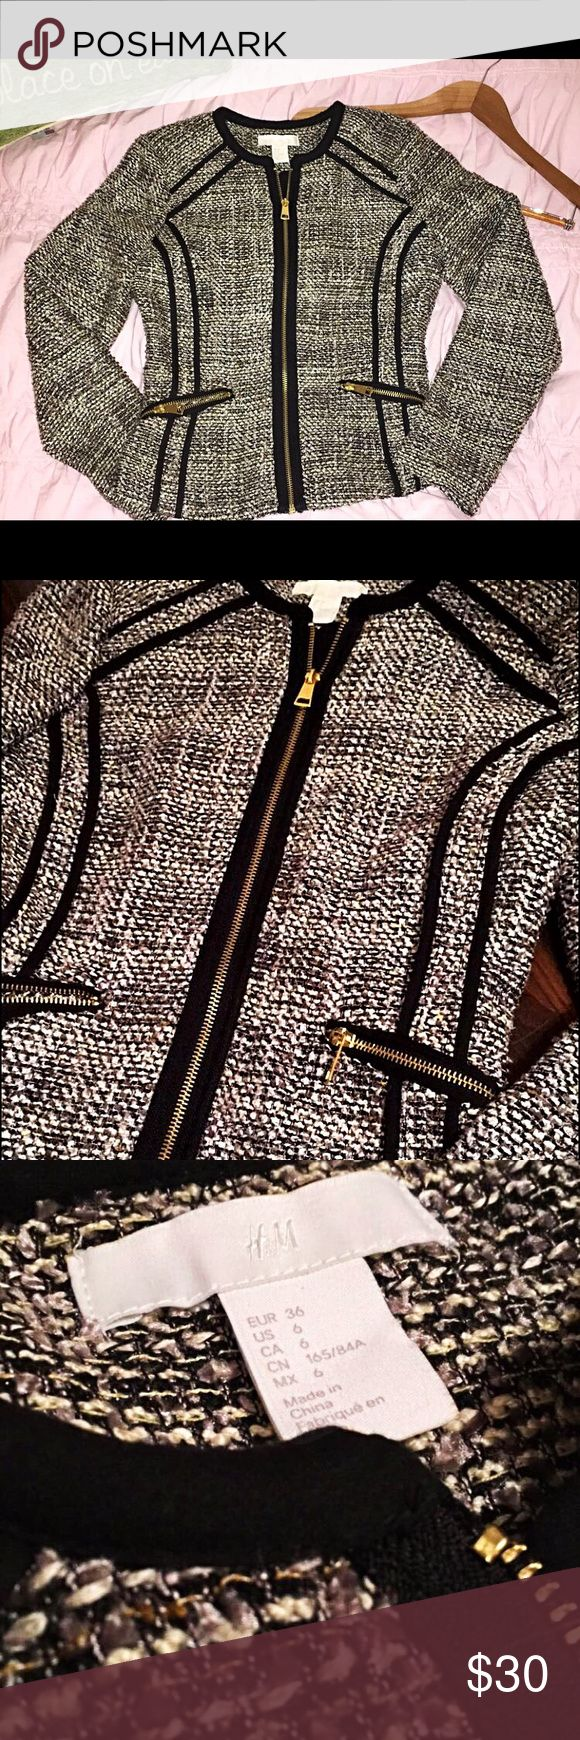 Multicolor zip up slimming blazer Grey, black, and white multicolor women's zip up blazer with gold hardware only worn once (size in person: comparable to women's small/ X-small) H&M Jackets & Coats Blazers